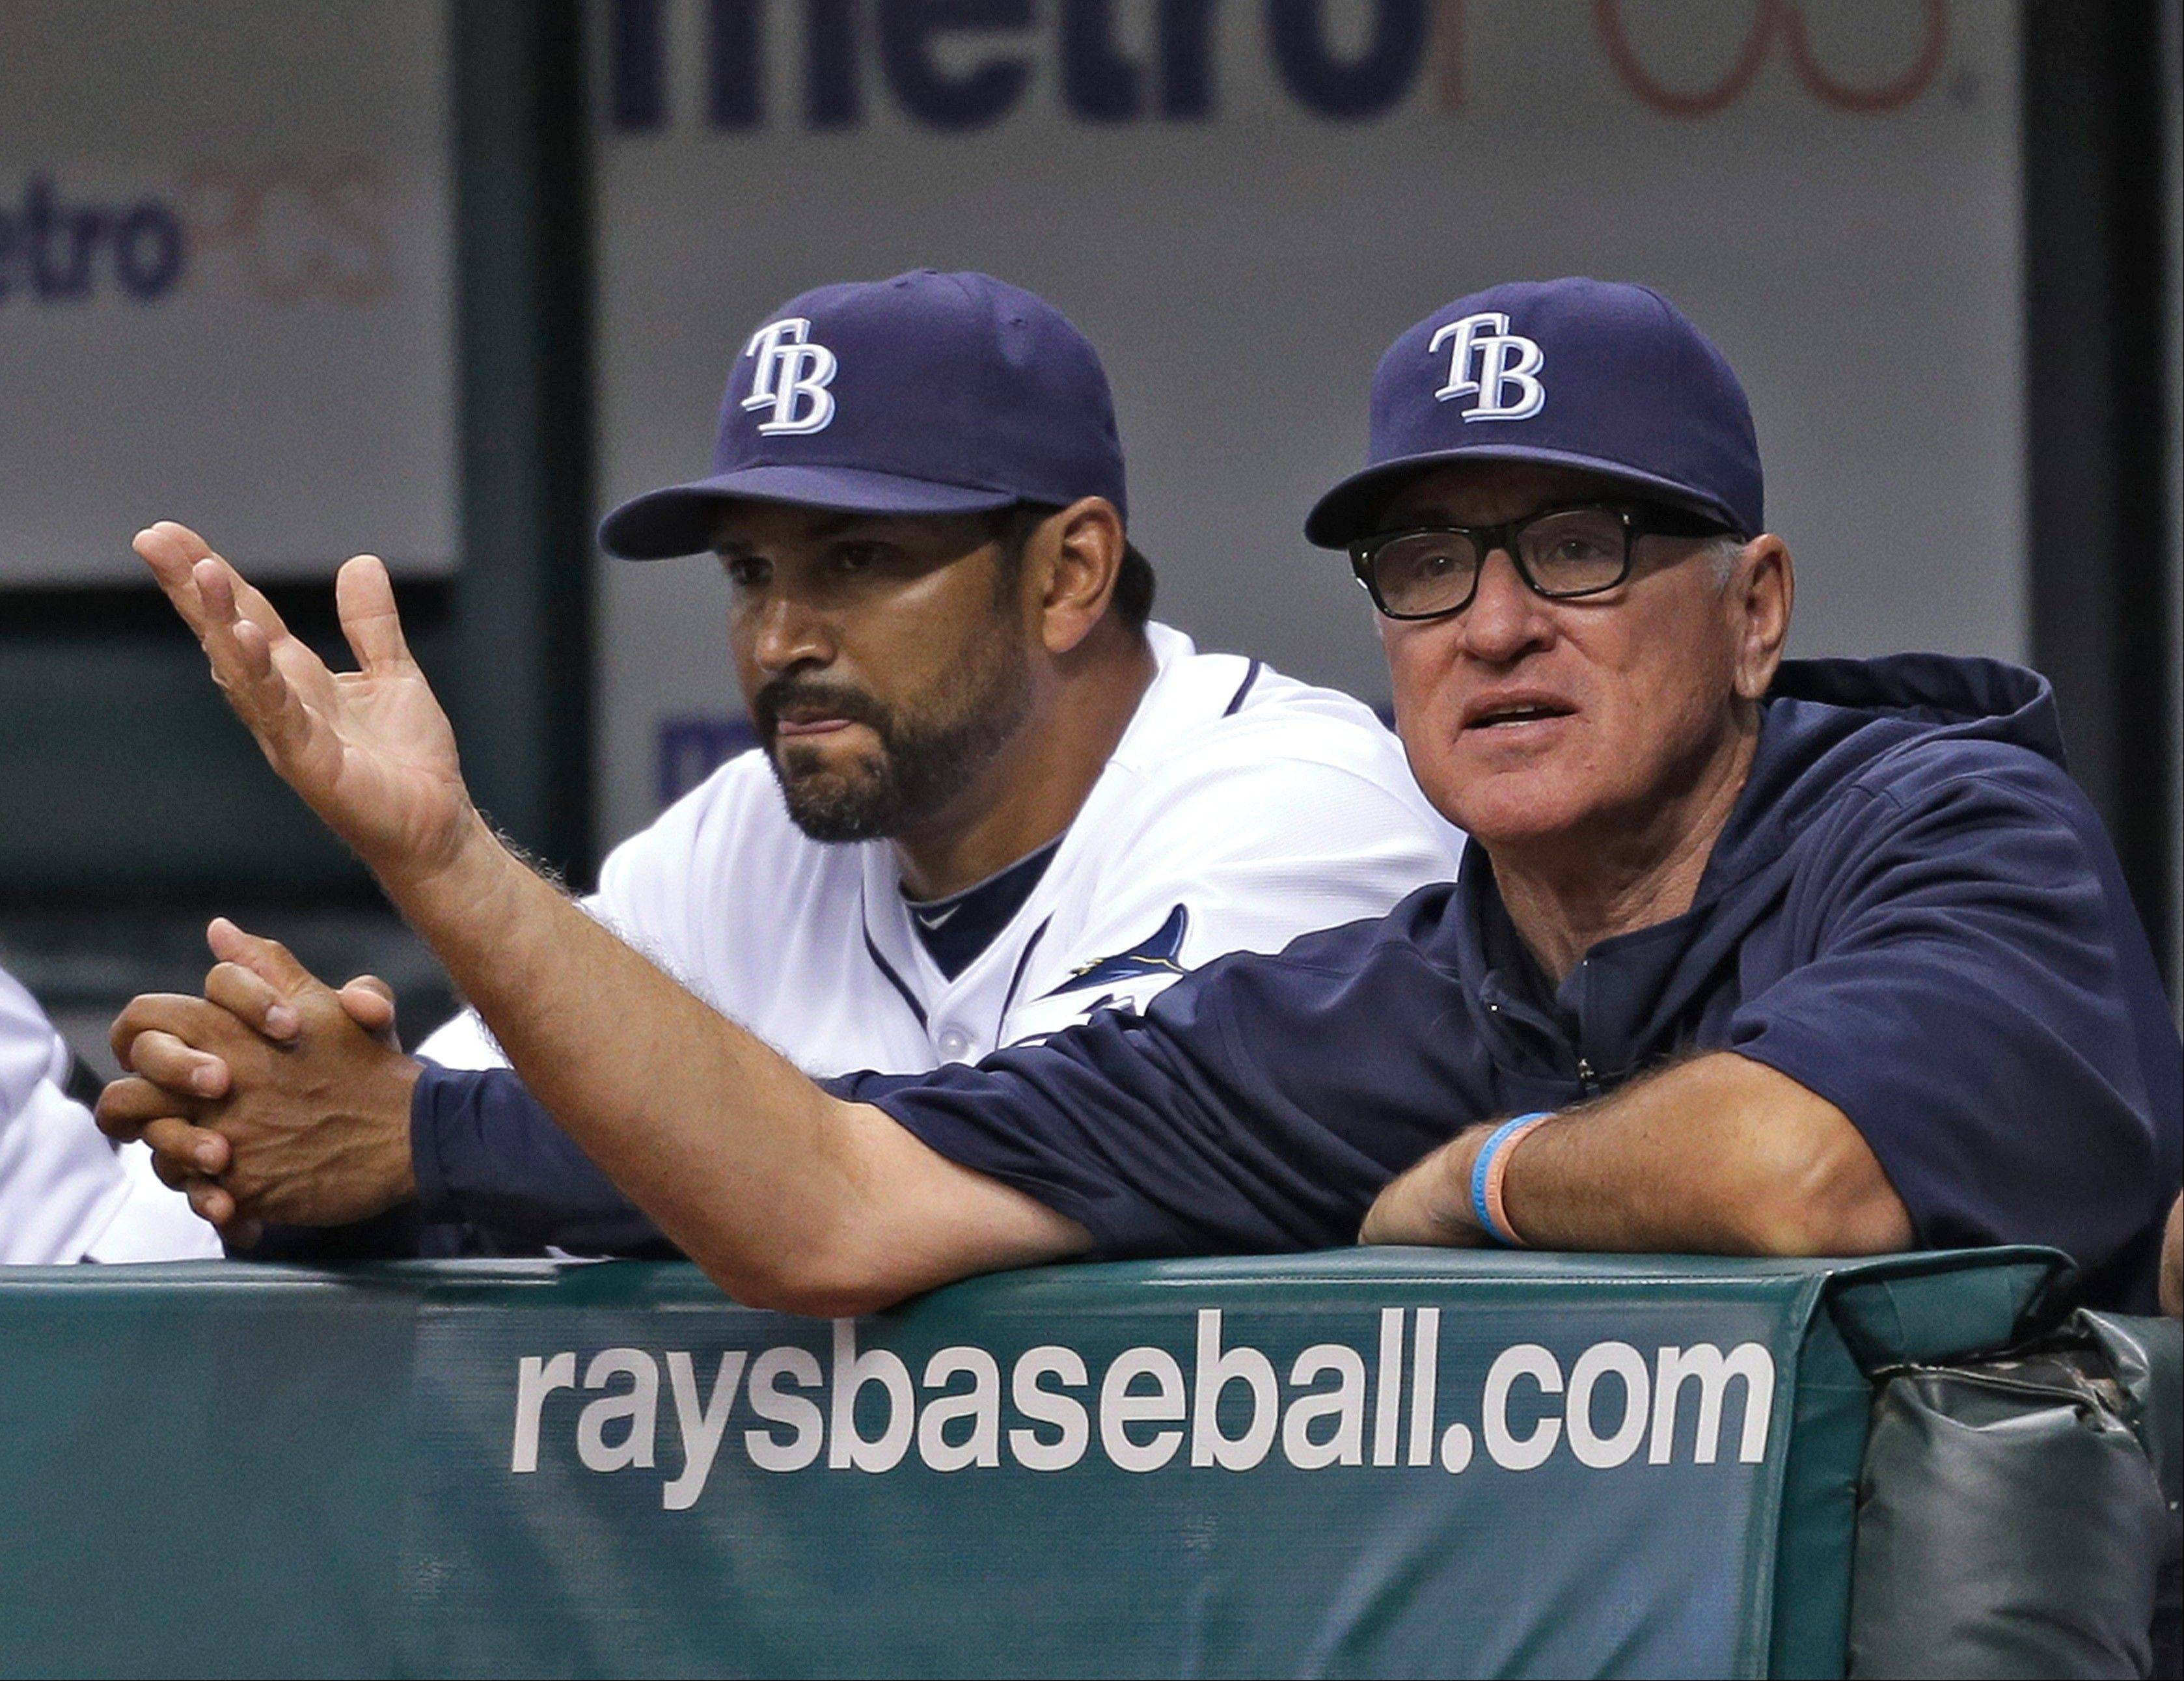 Tampa Bay bench coach Dave Martinez, shown here with manager Joe Maddon, right, has interviewed for the Cubs managerial opening. He played for the Cubs and the White Sox.